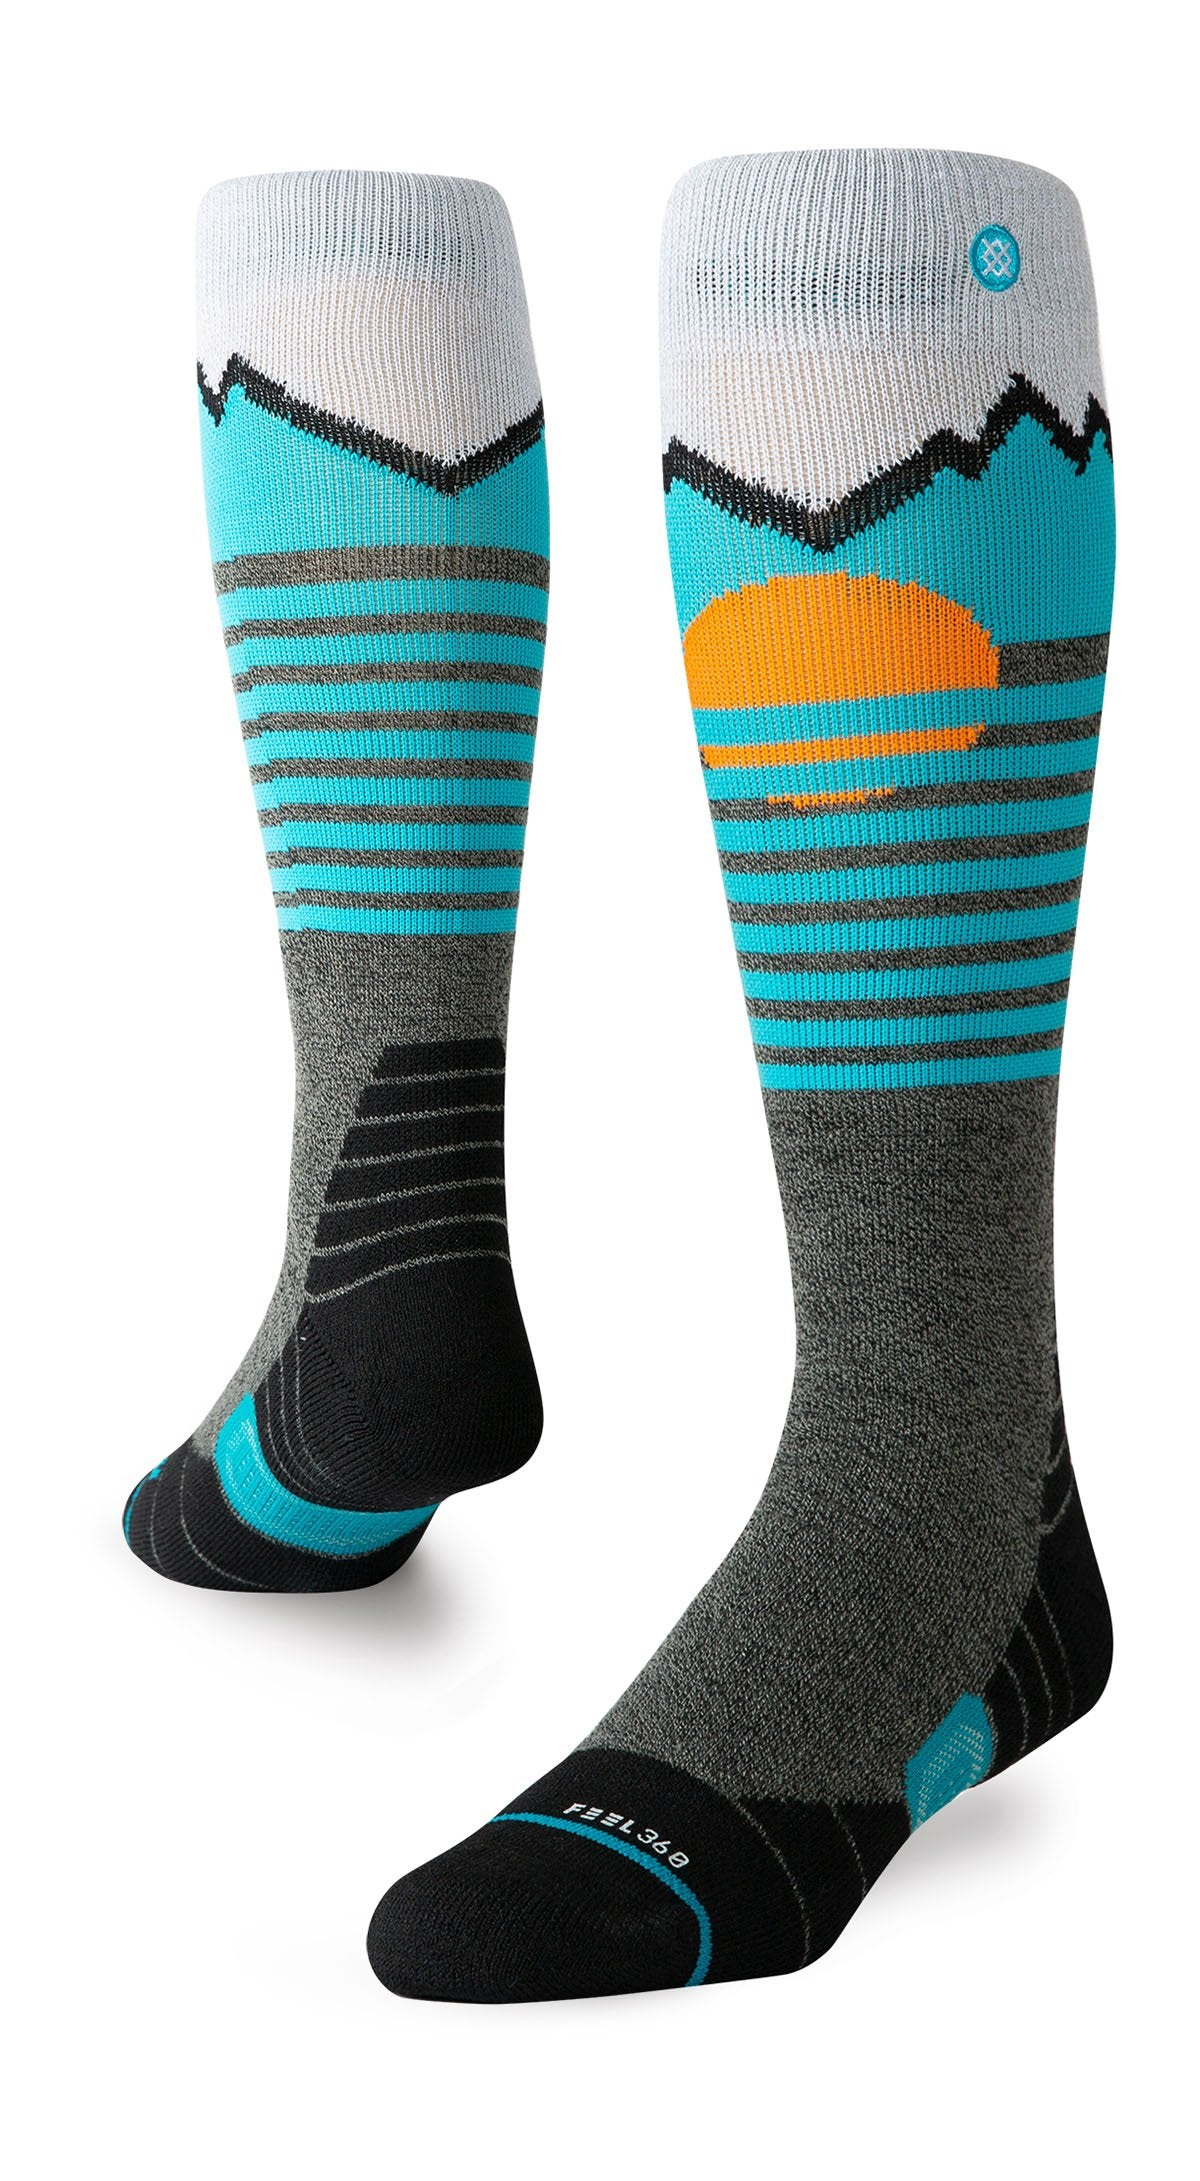 Stance Mens Mountain 2 pack Ski Socks